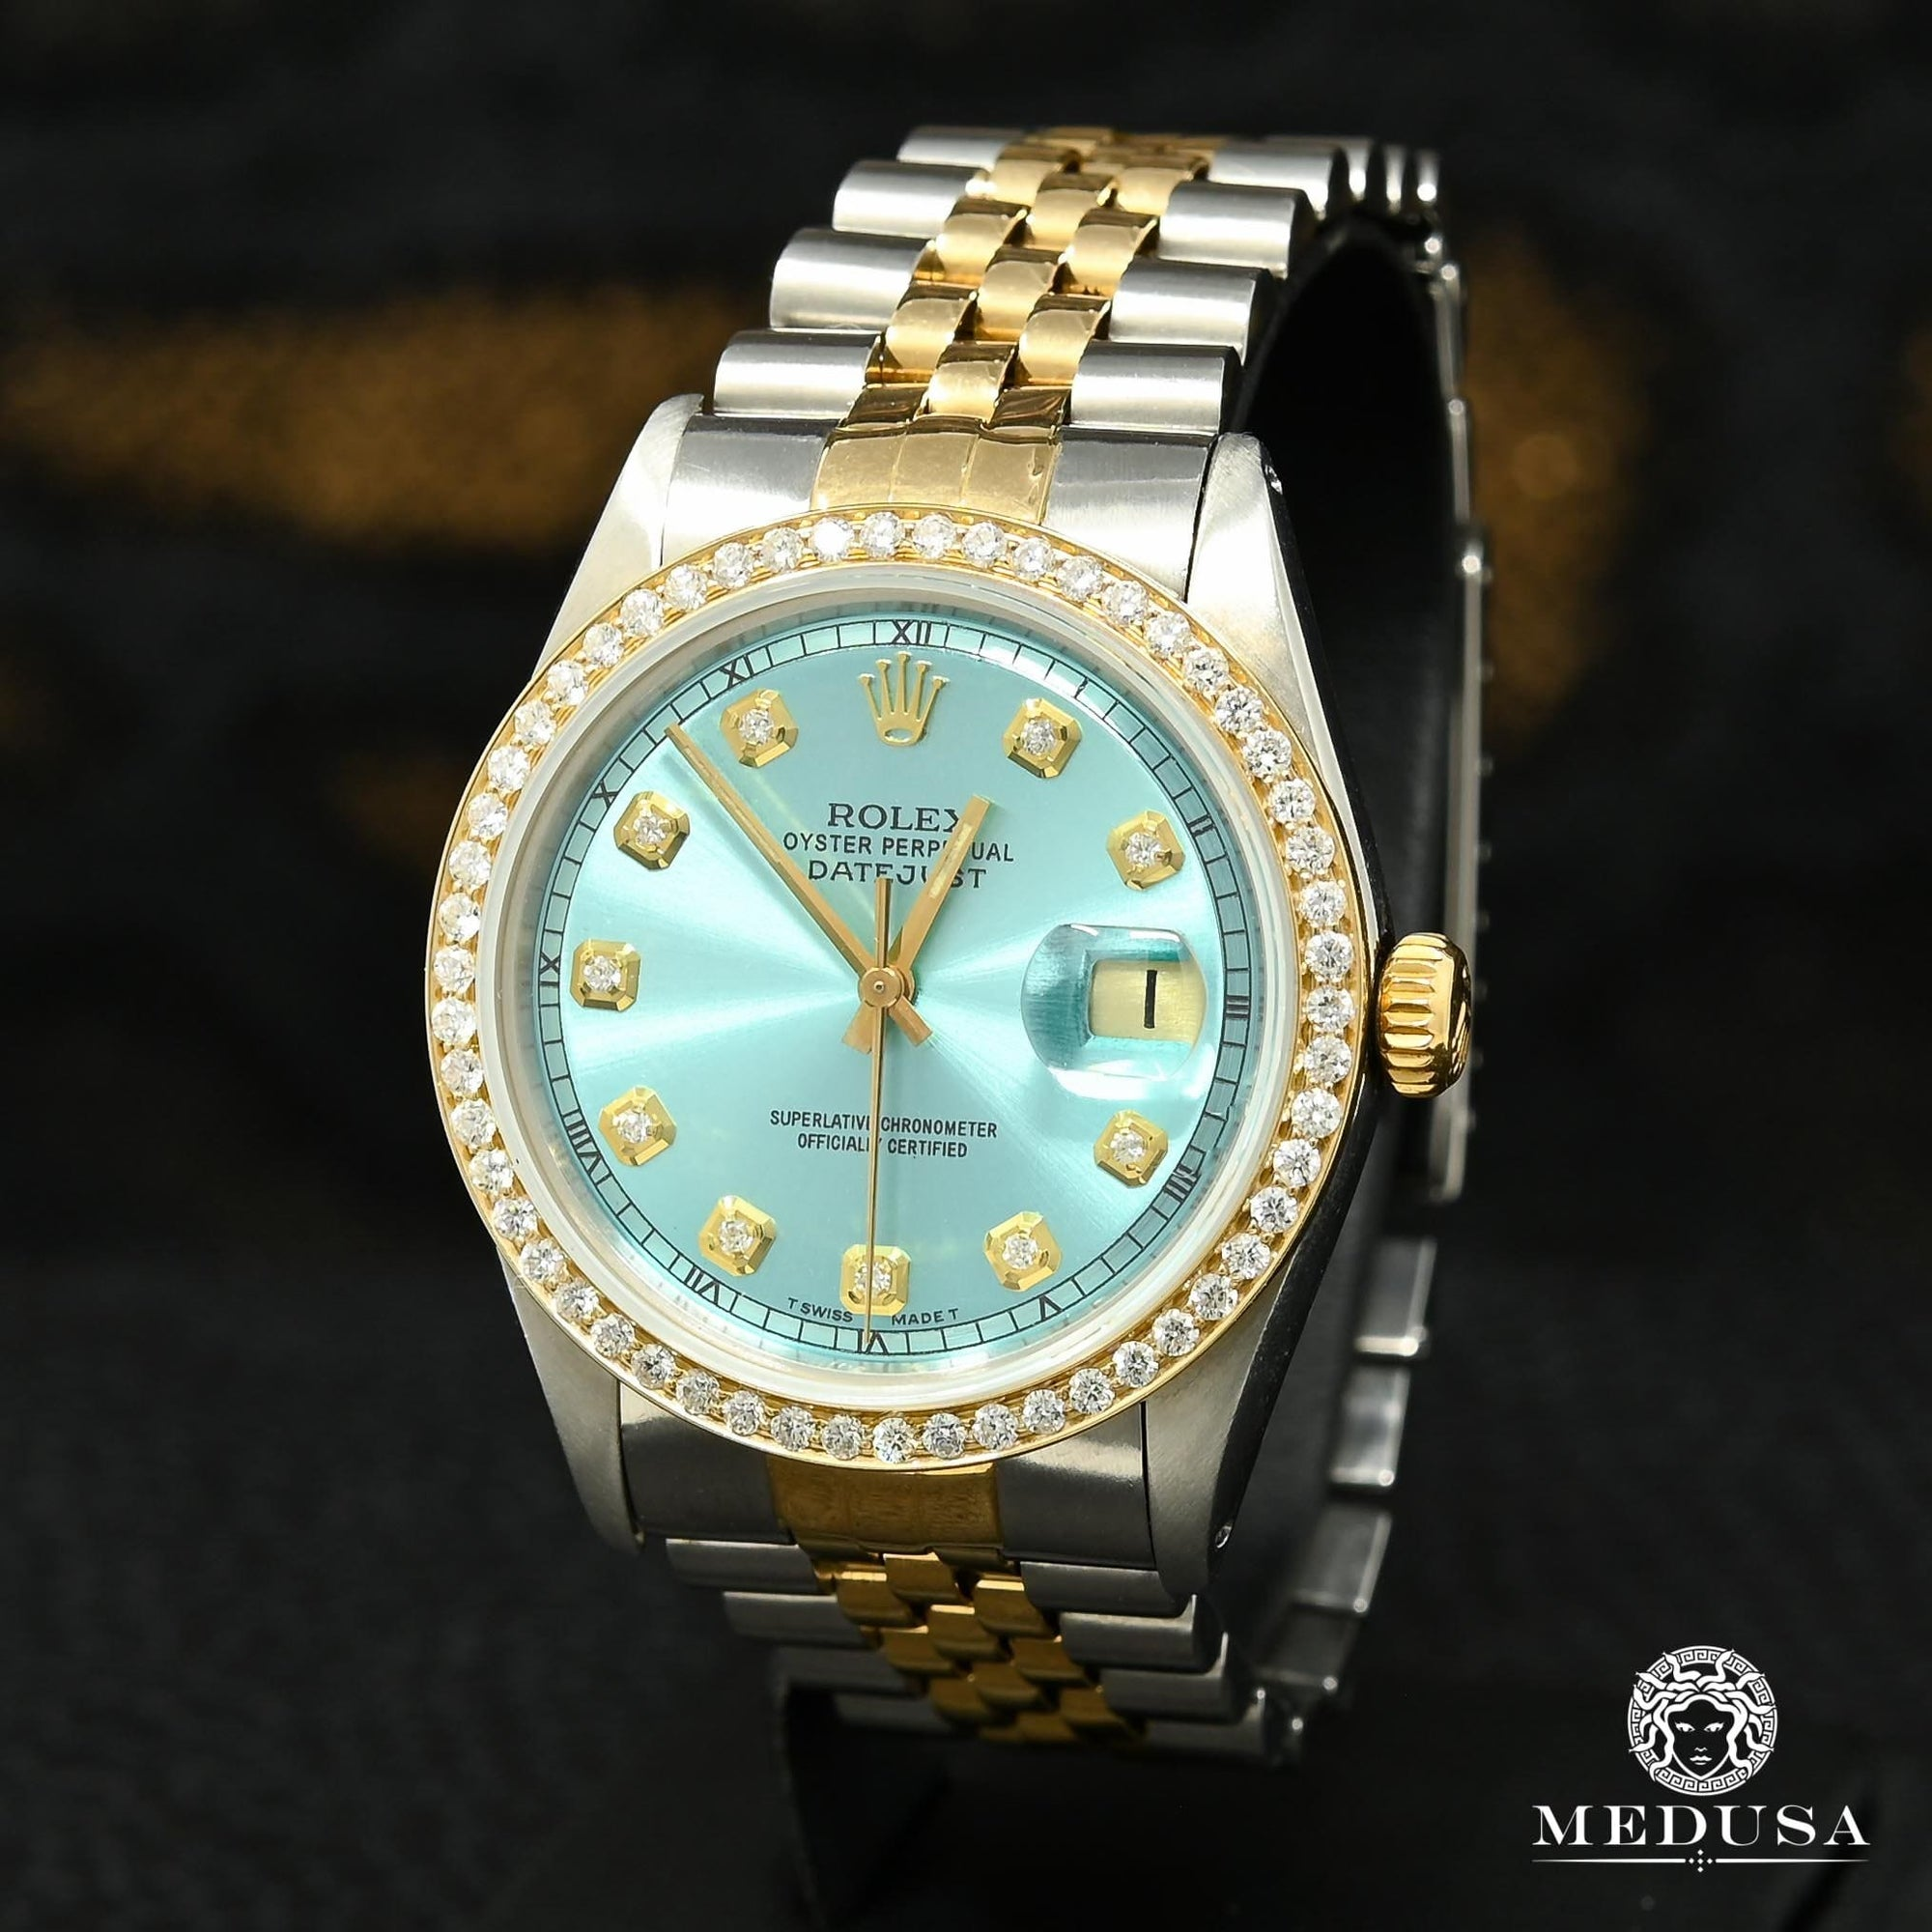 Montre Rolex | Montre Homme Rolex Datejust 36mm - Cyan Vintage Or 2 Tons